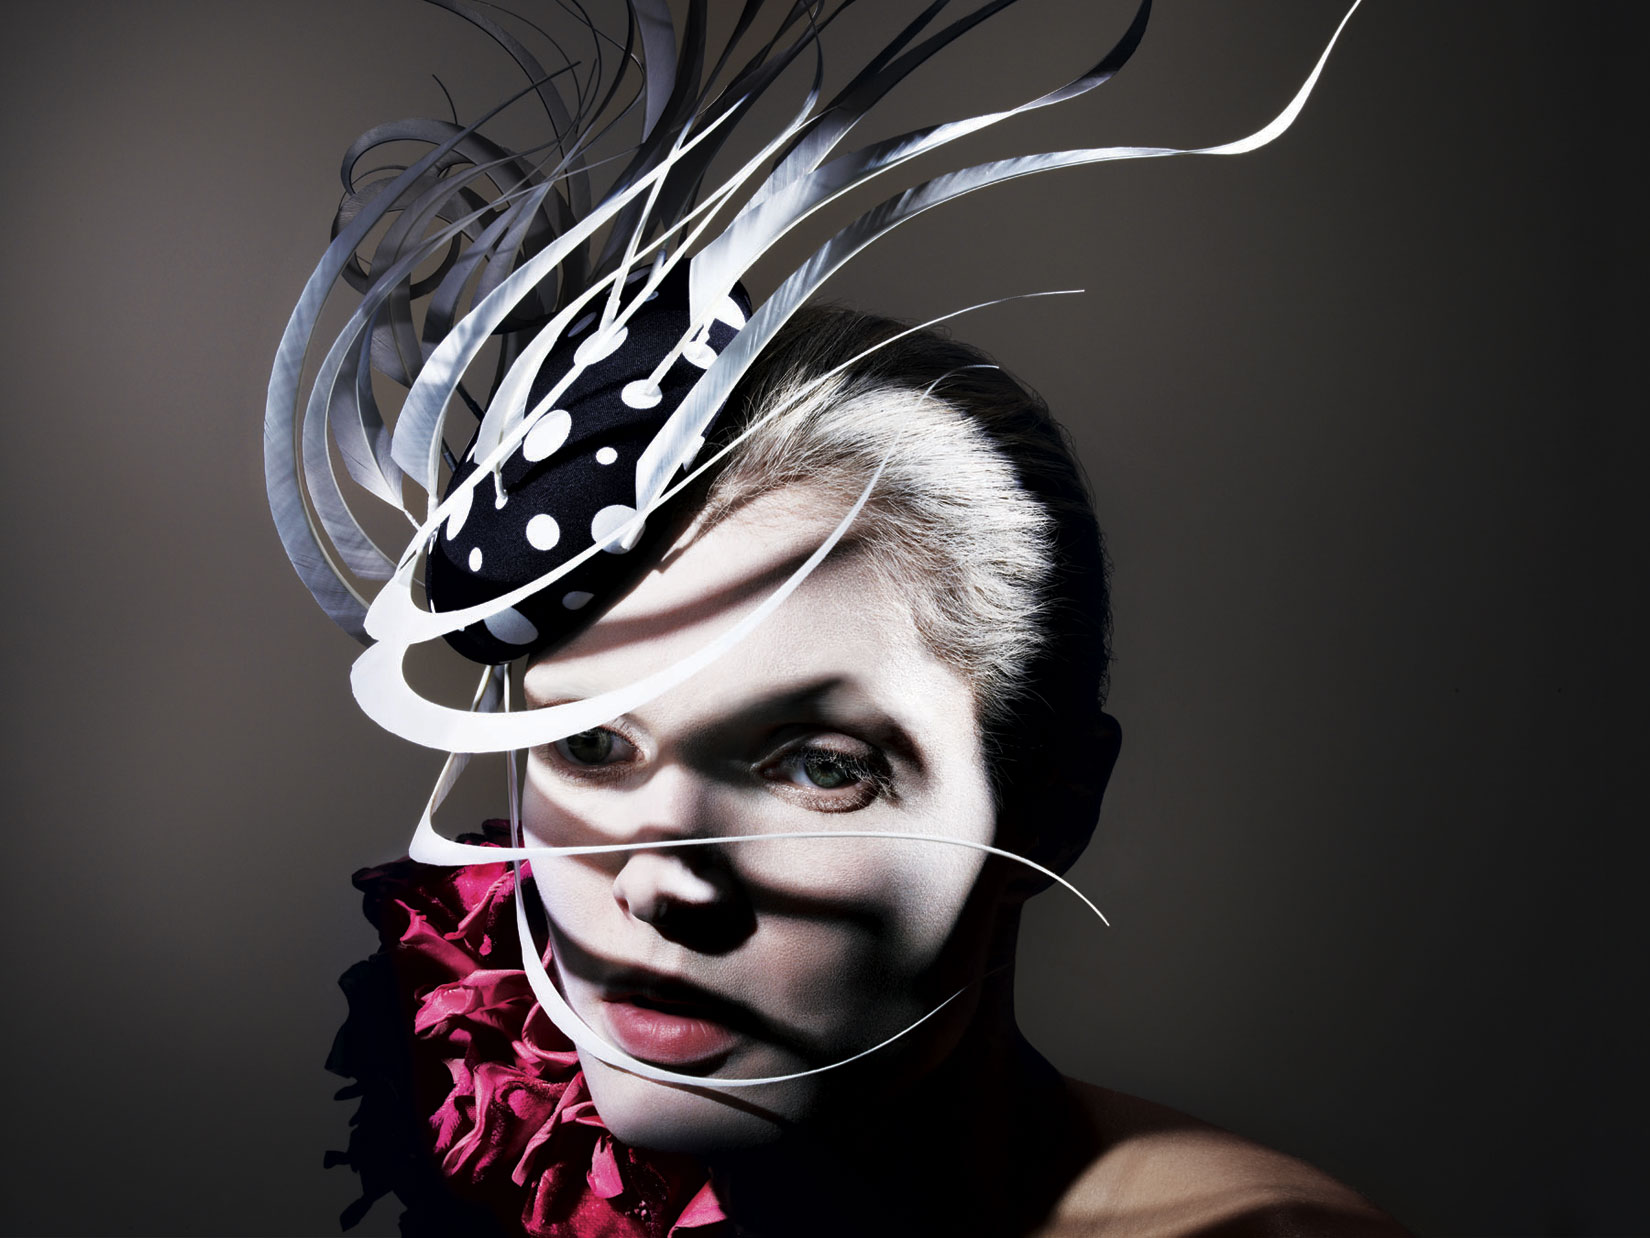 Philip_Treacy_4